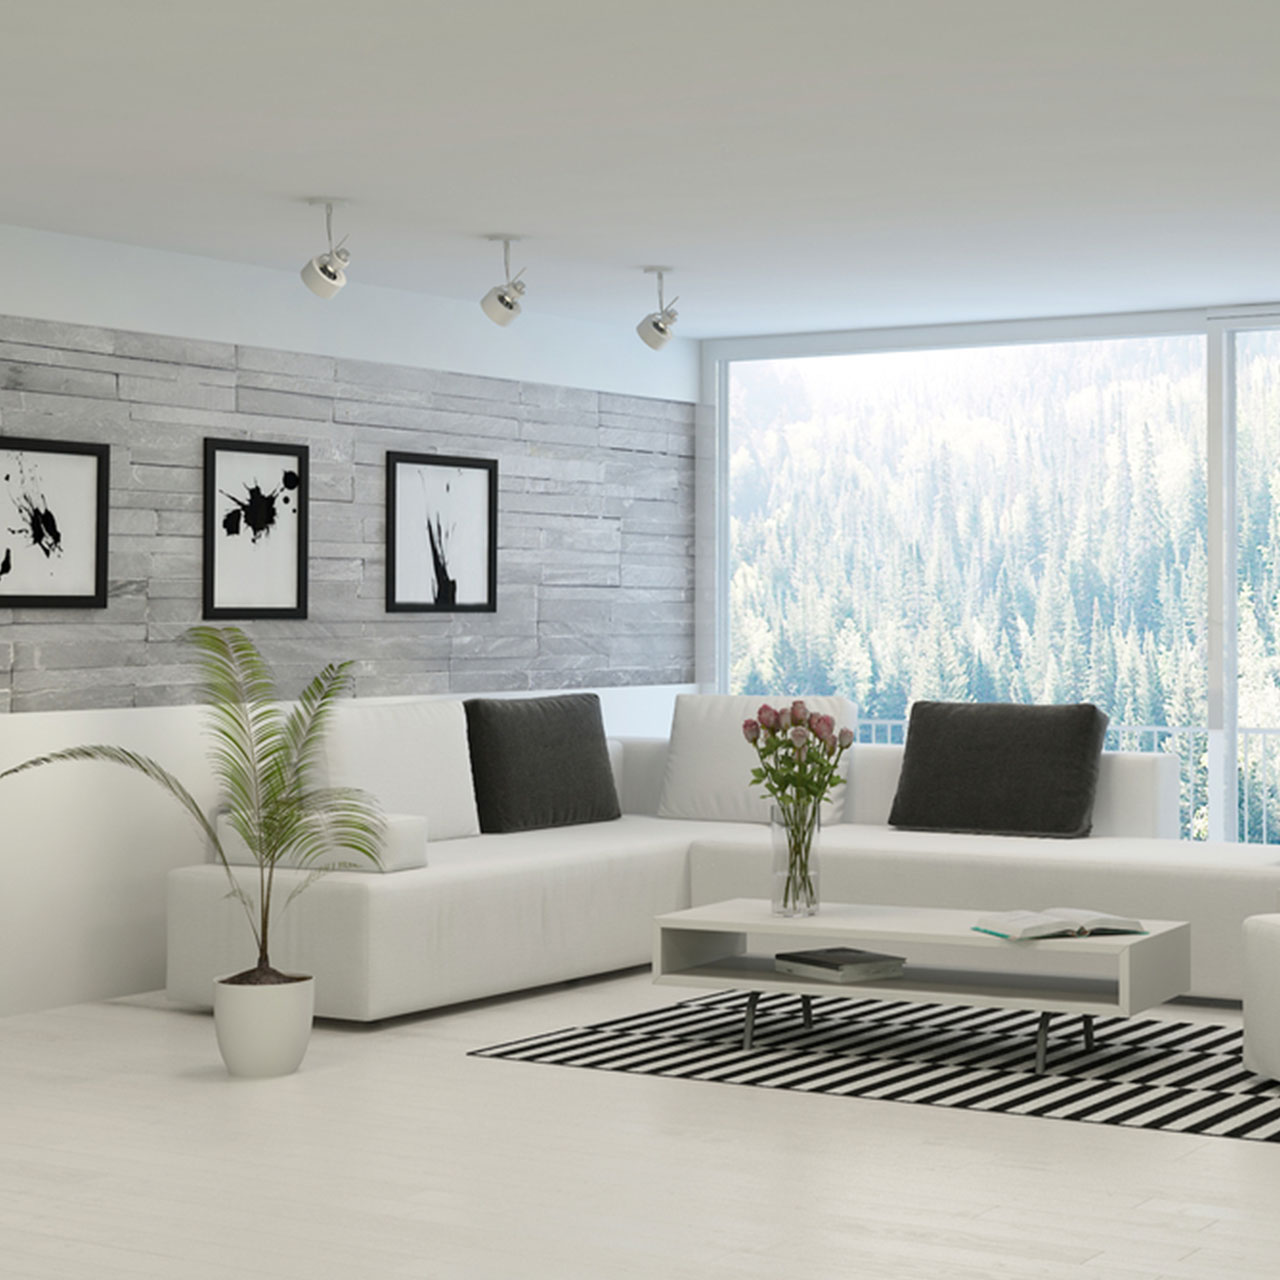 Choose the right color for your modern penthouses design